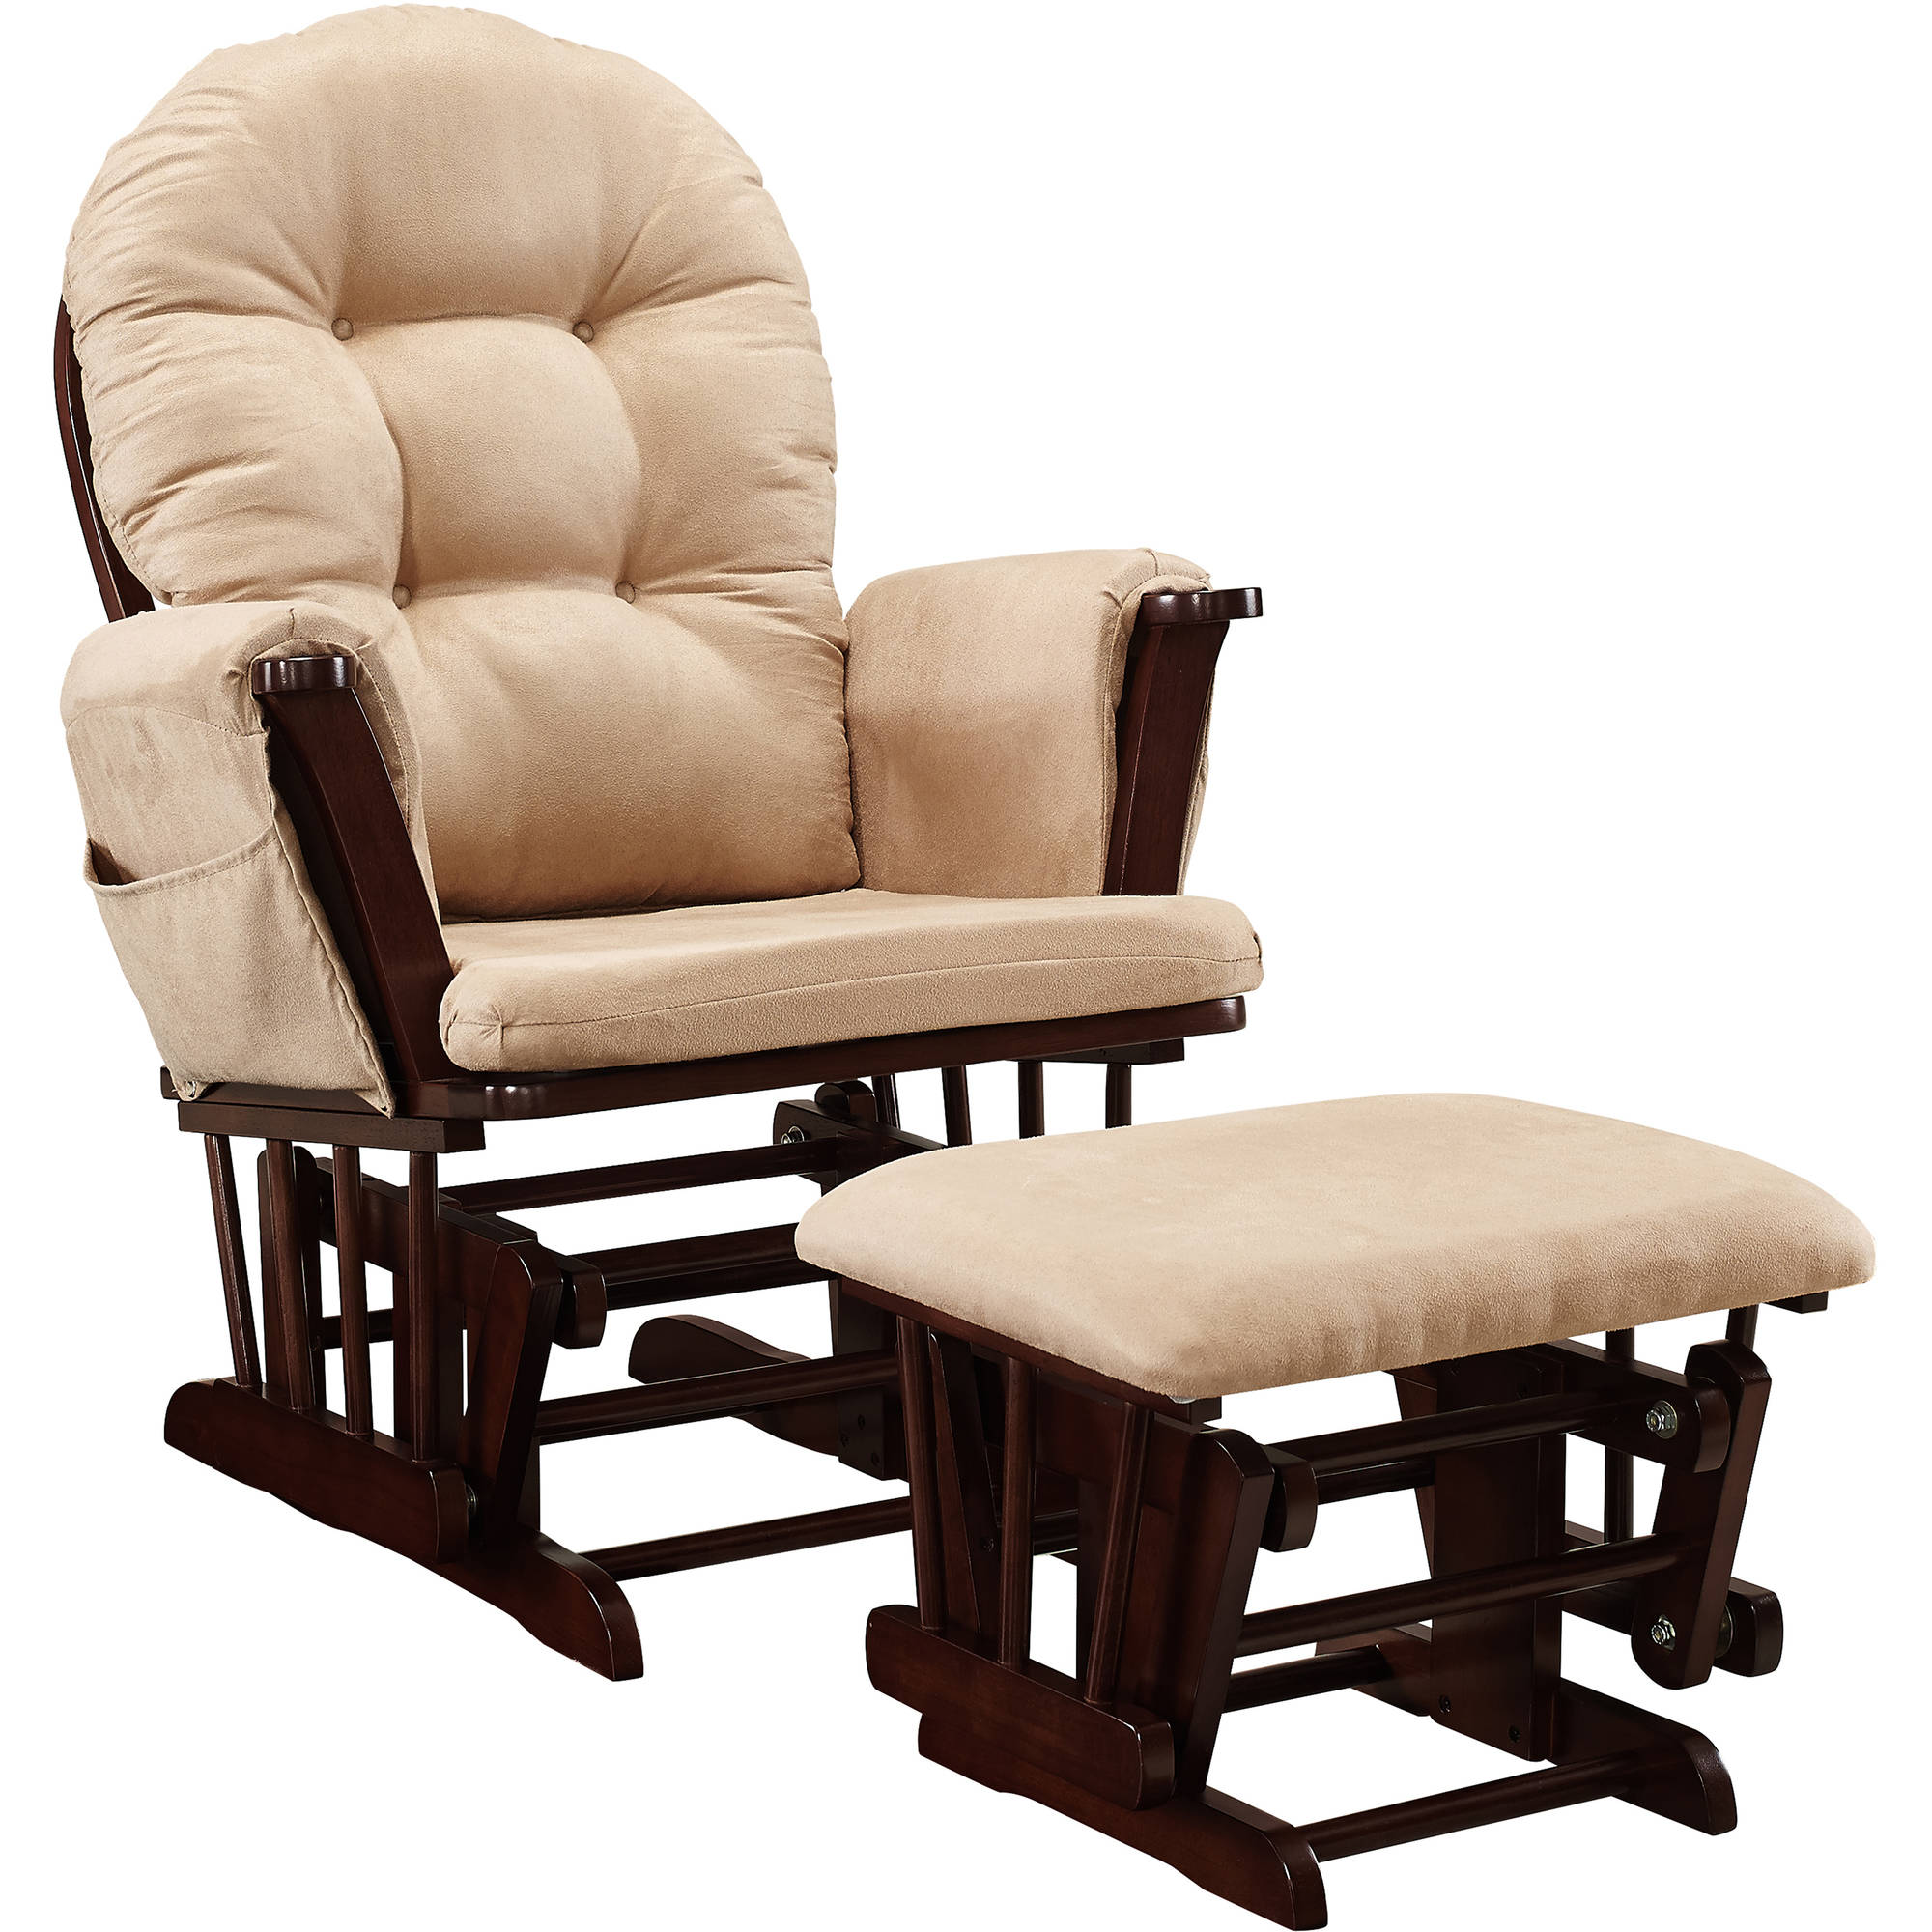 Cushions For Glider Chairs Baby Relax Harbour Glider Rocker And Ottoman Espresso With Beige Cushions